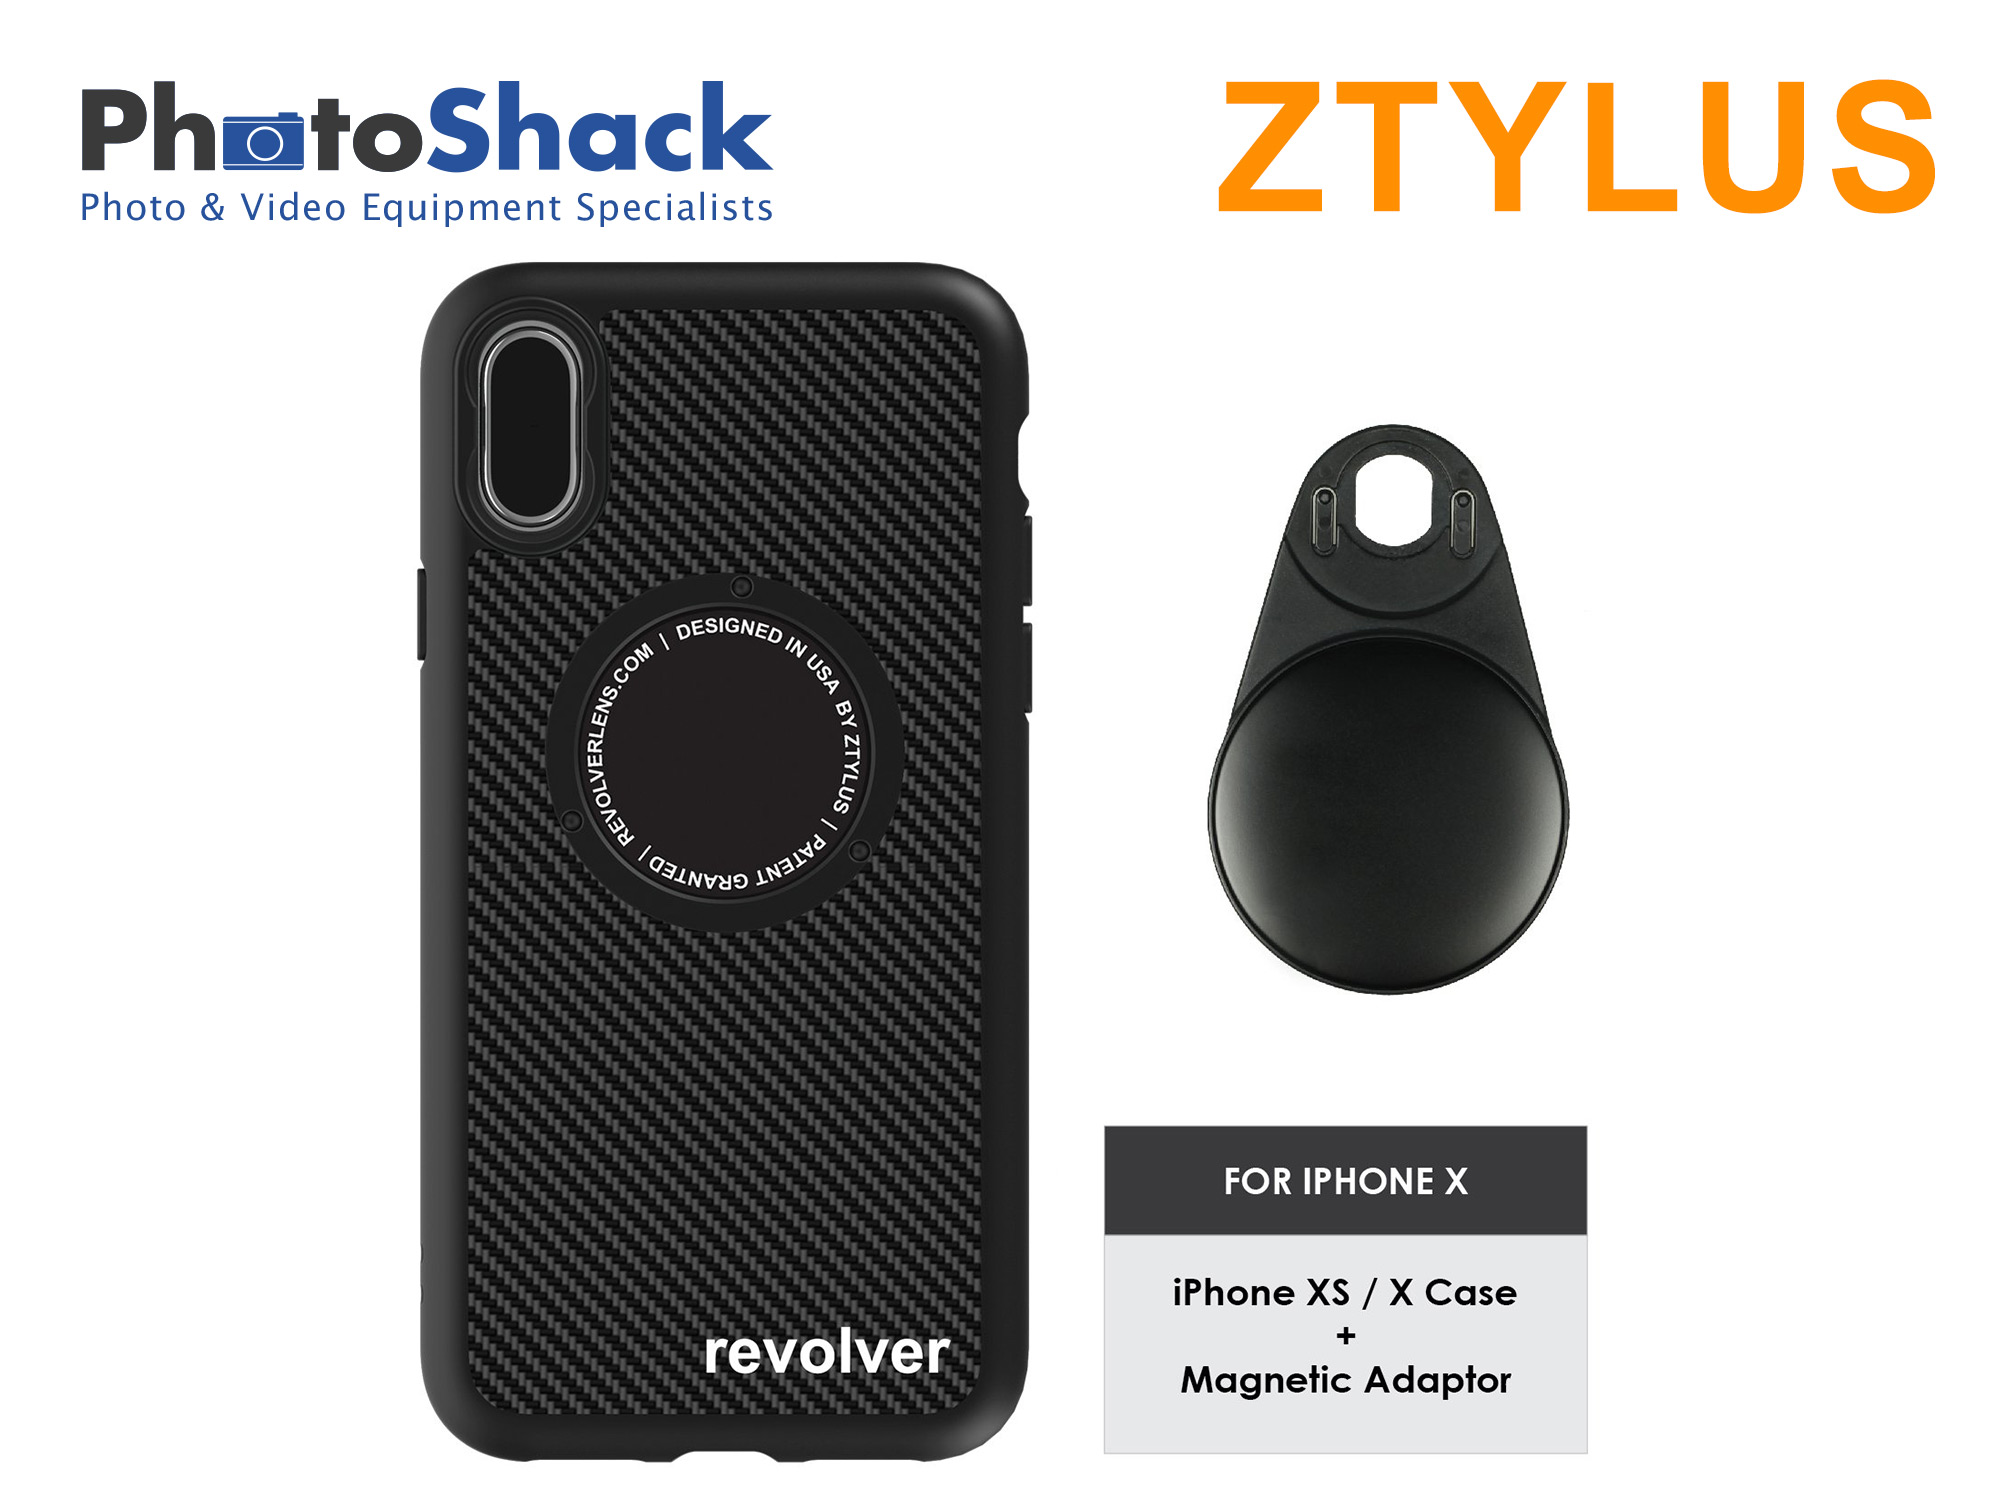 Ztylus iPhone Case (carbon fiber) for iPhone X and Magnetic Adapter